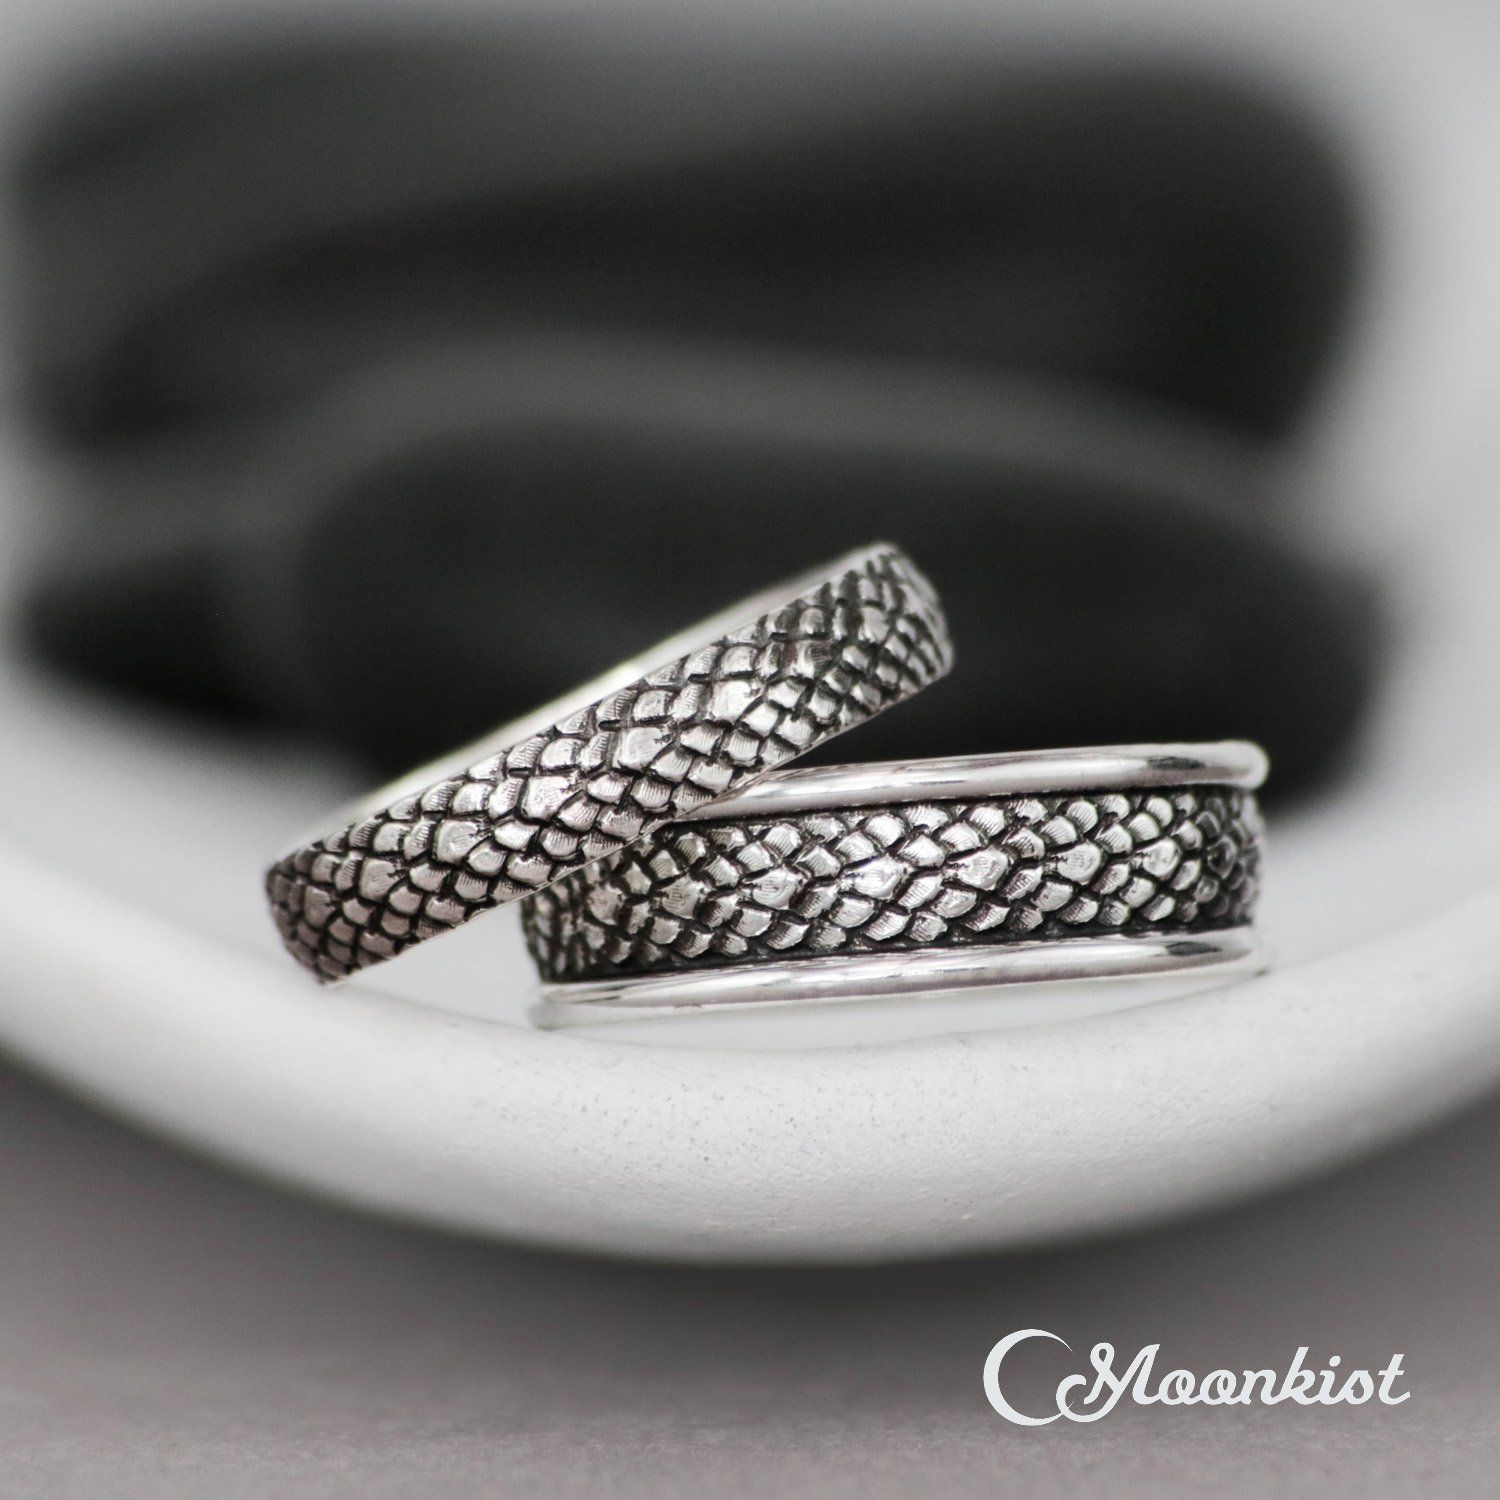 Dragon Wedding Band Set Matching Rings For Couples Sterling Silver Wedding Ring Set His And Her Dragon Rings Moonkist Designs In 2020 Sterling Silver Wedding Rings Sets Sterling Silver Wedding